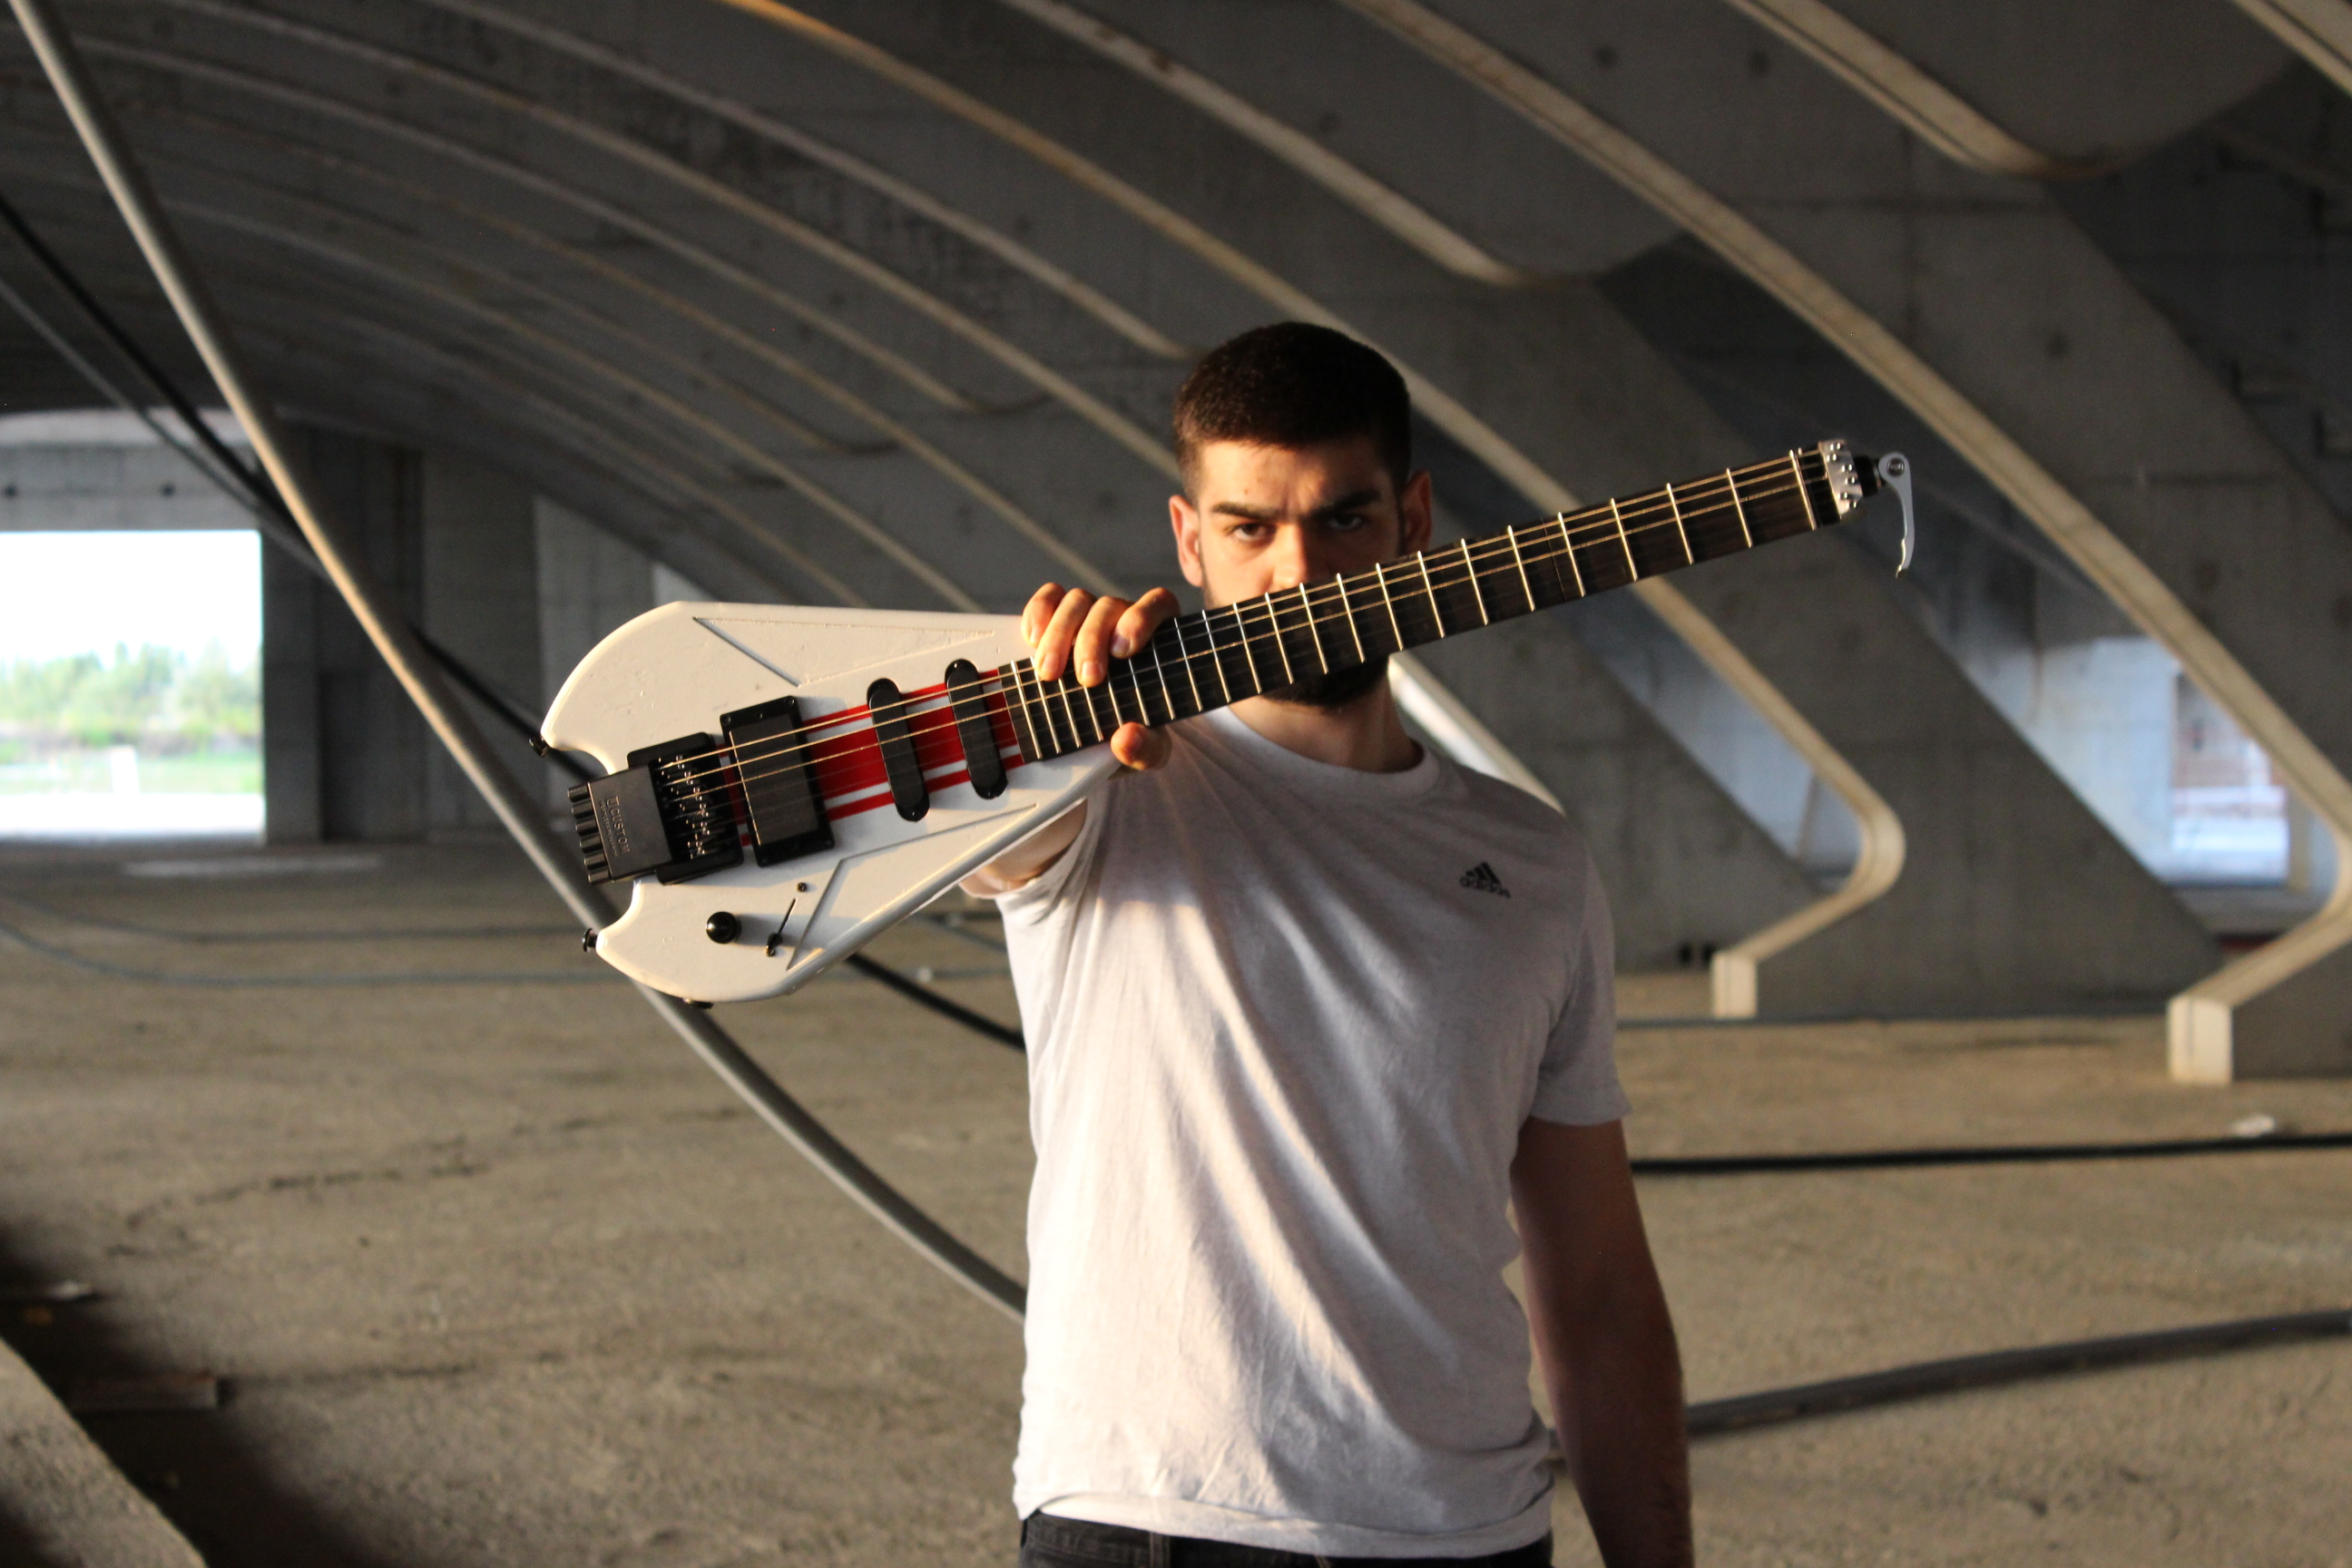 Travel guitar breaks into three for transport